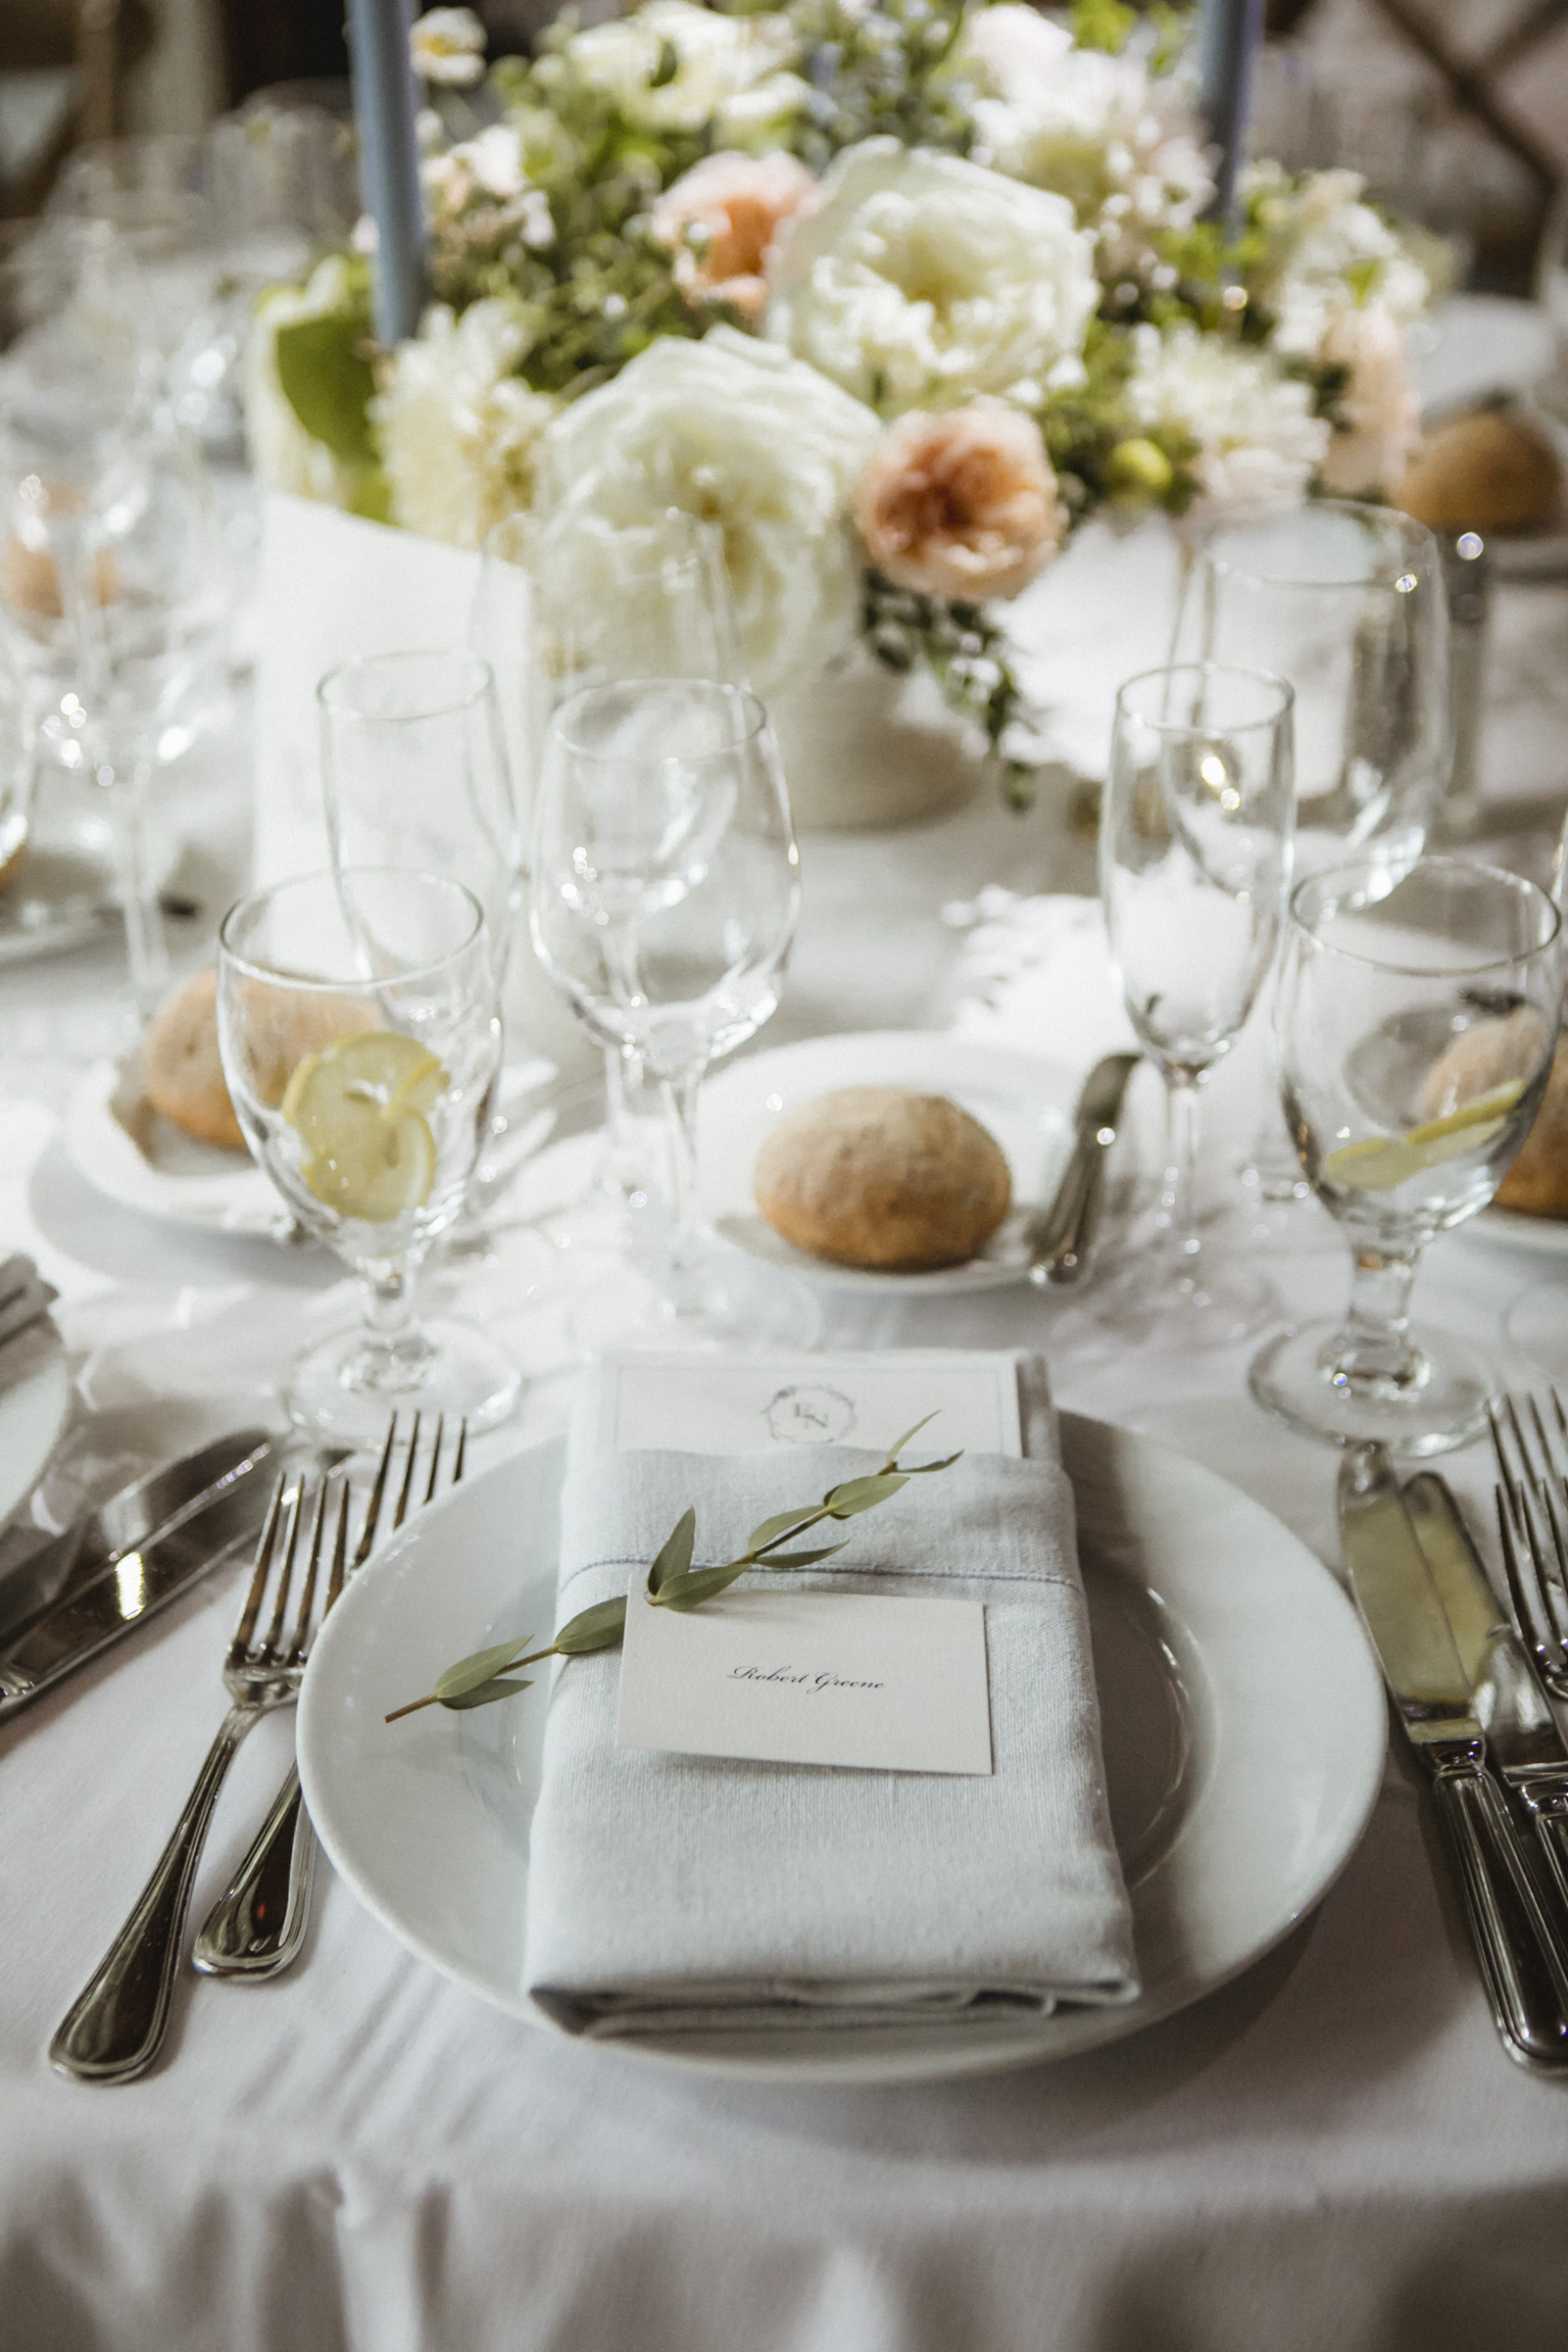 Amy Sims Photography | place card and a sprig of eucalyptus lay on a place setting | Central park wedding | Loeb Boathouse wedding | New York Wedding Photographer | Manhattan wedding photographer